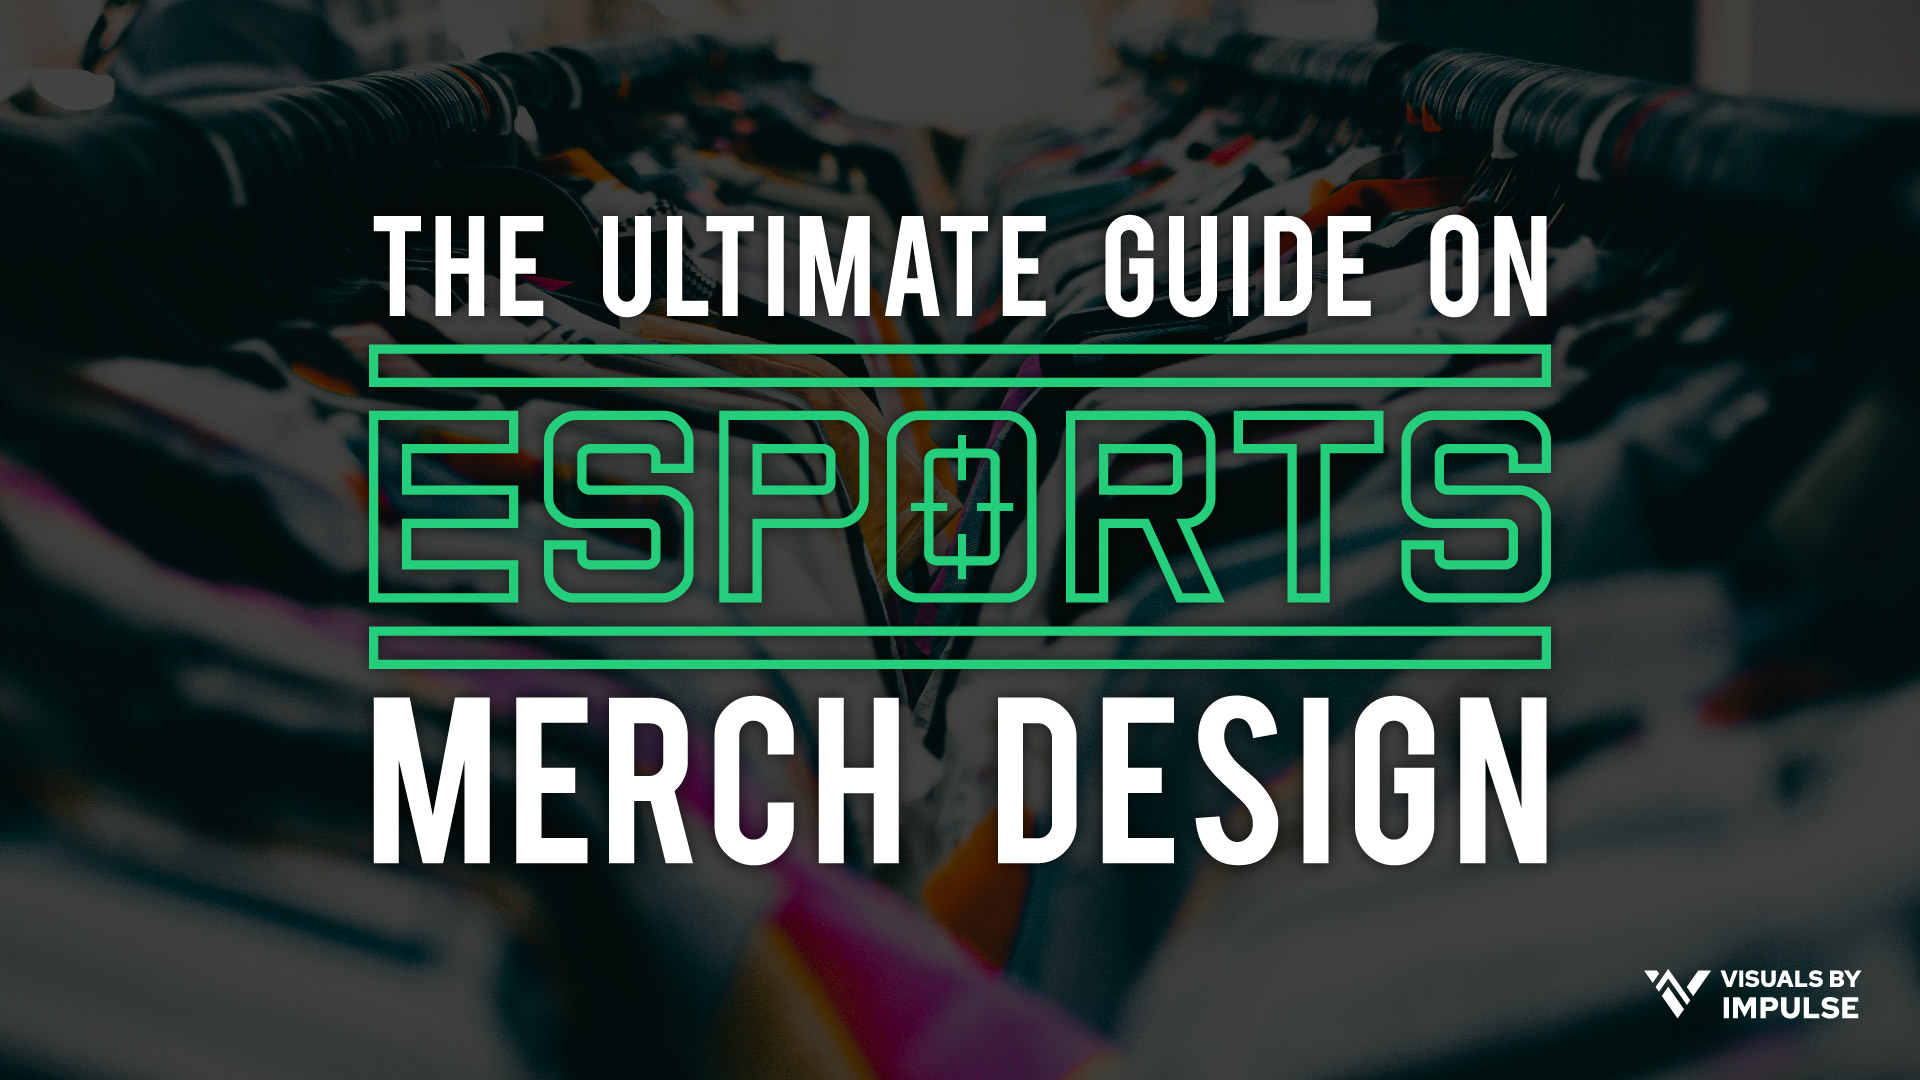 Esports Merch Design The Ultimate Guide To Apparel